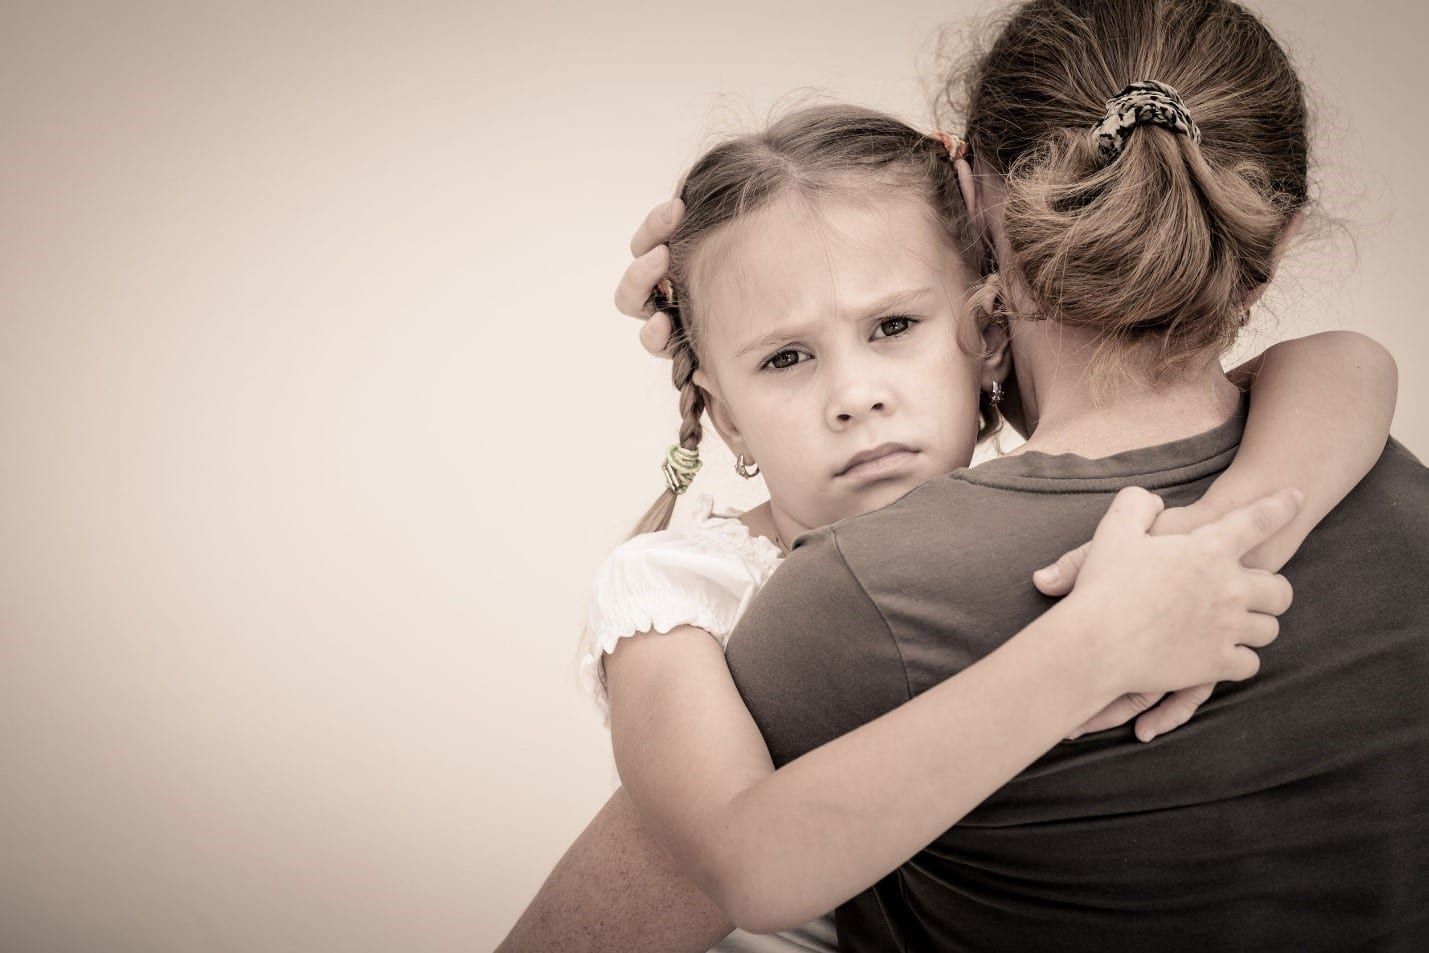 A Domestic Violence Charge Can Keep You From Your Children